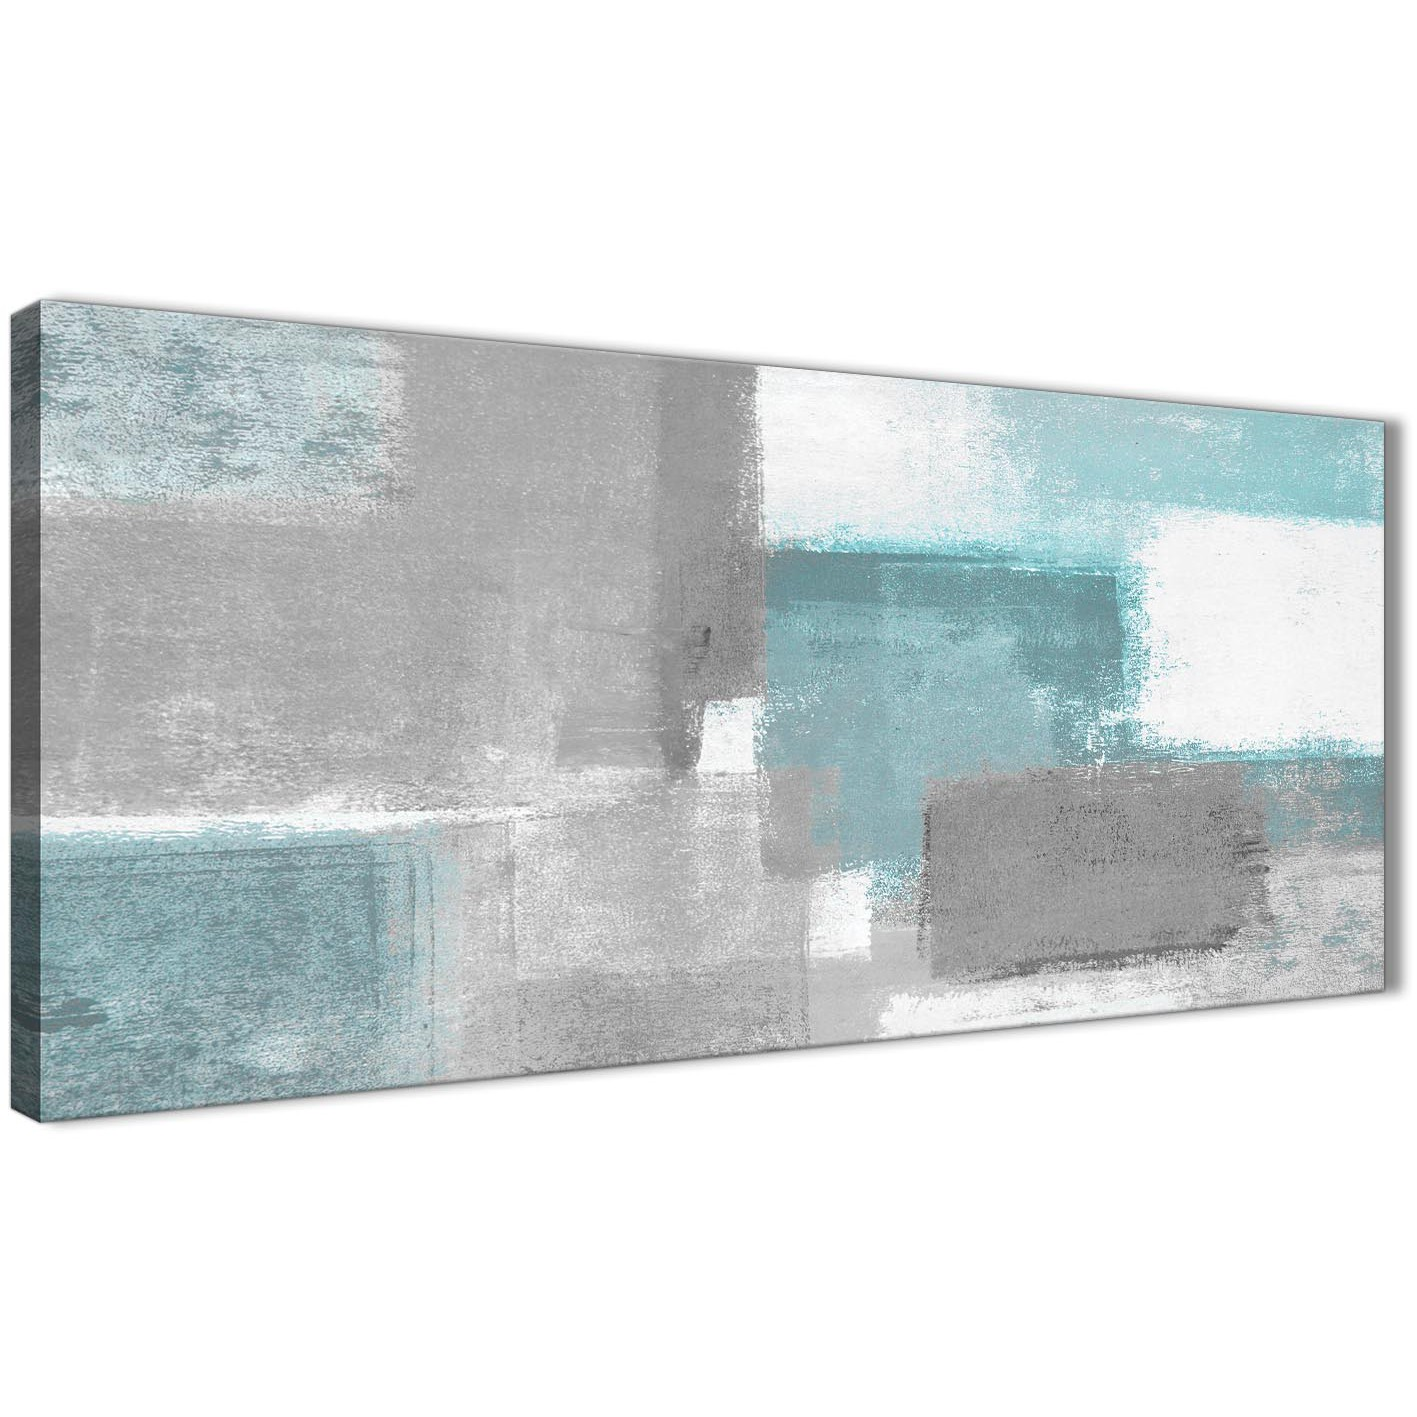 Teal Grey Painting Bedroom Canvas Wall Art Accessories - Abstract ...